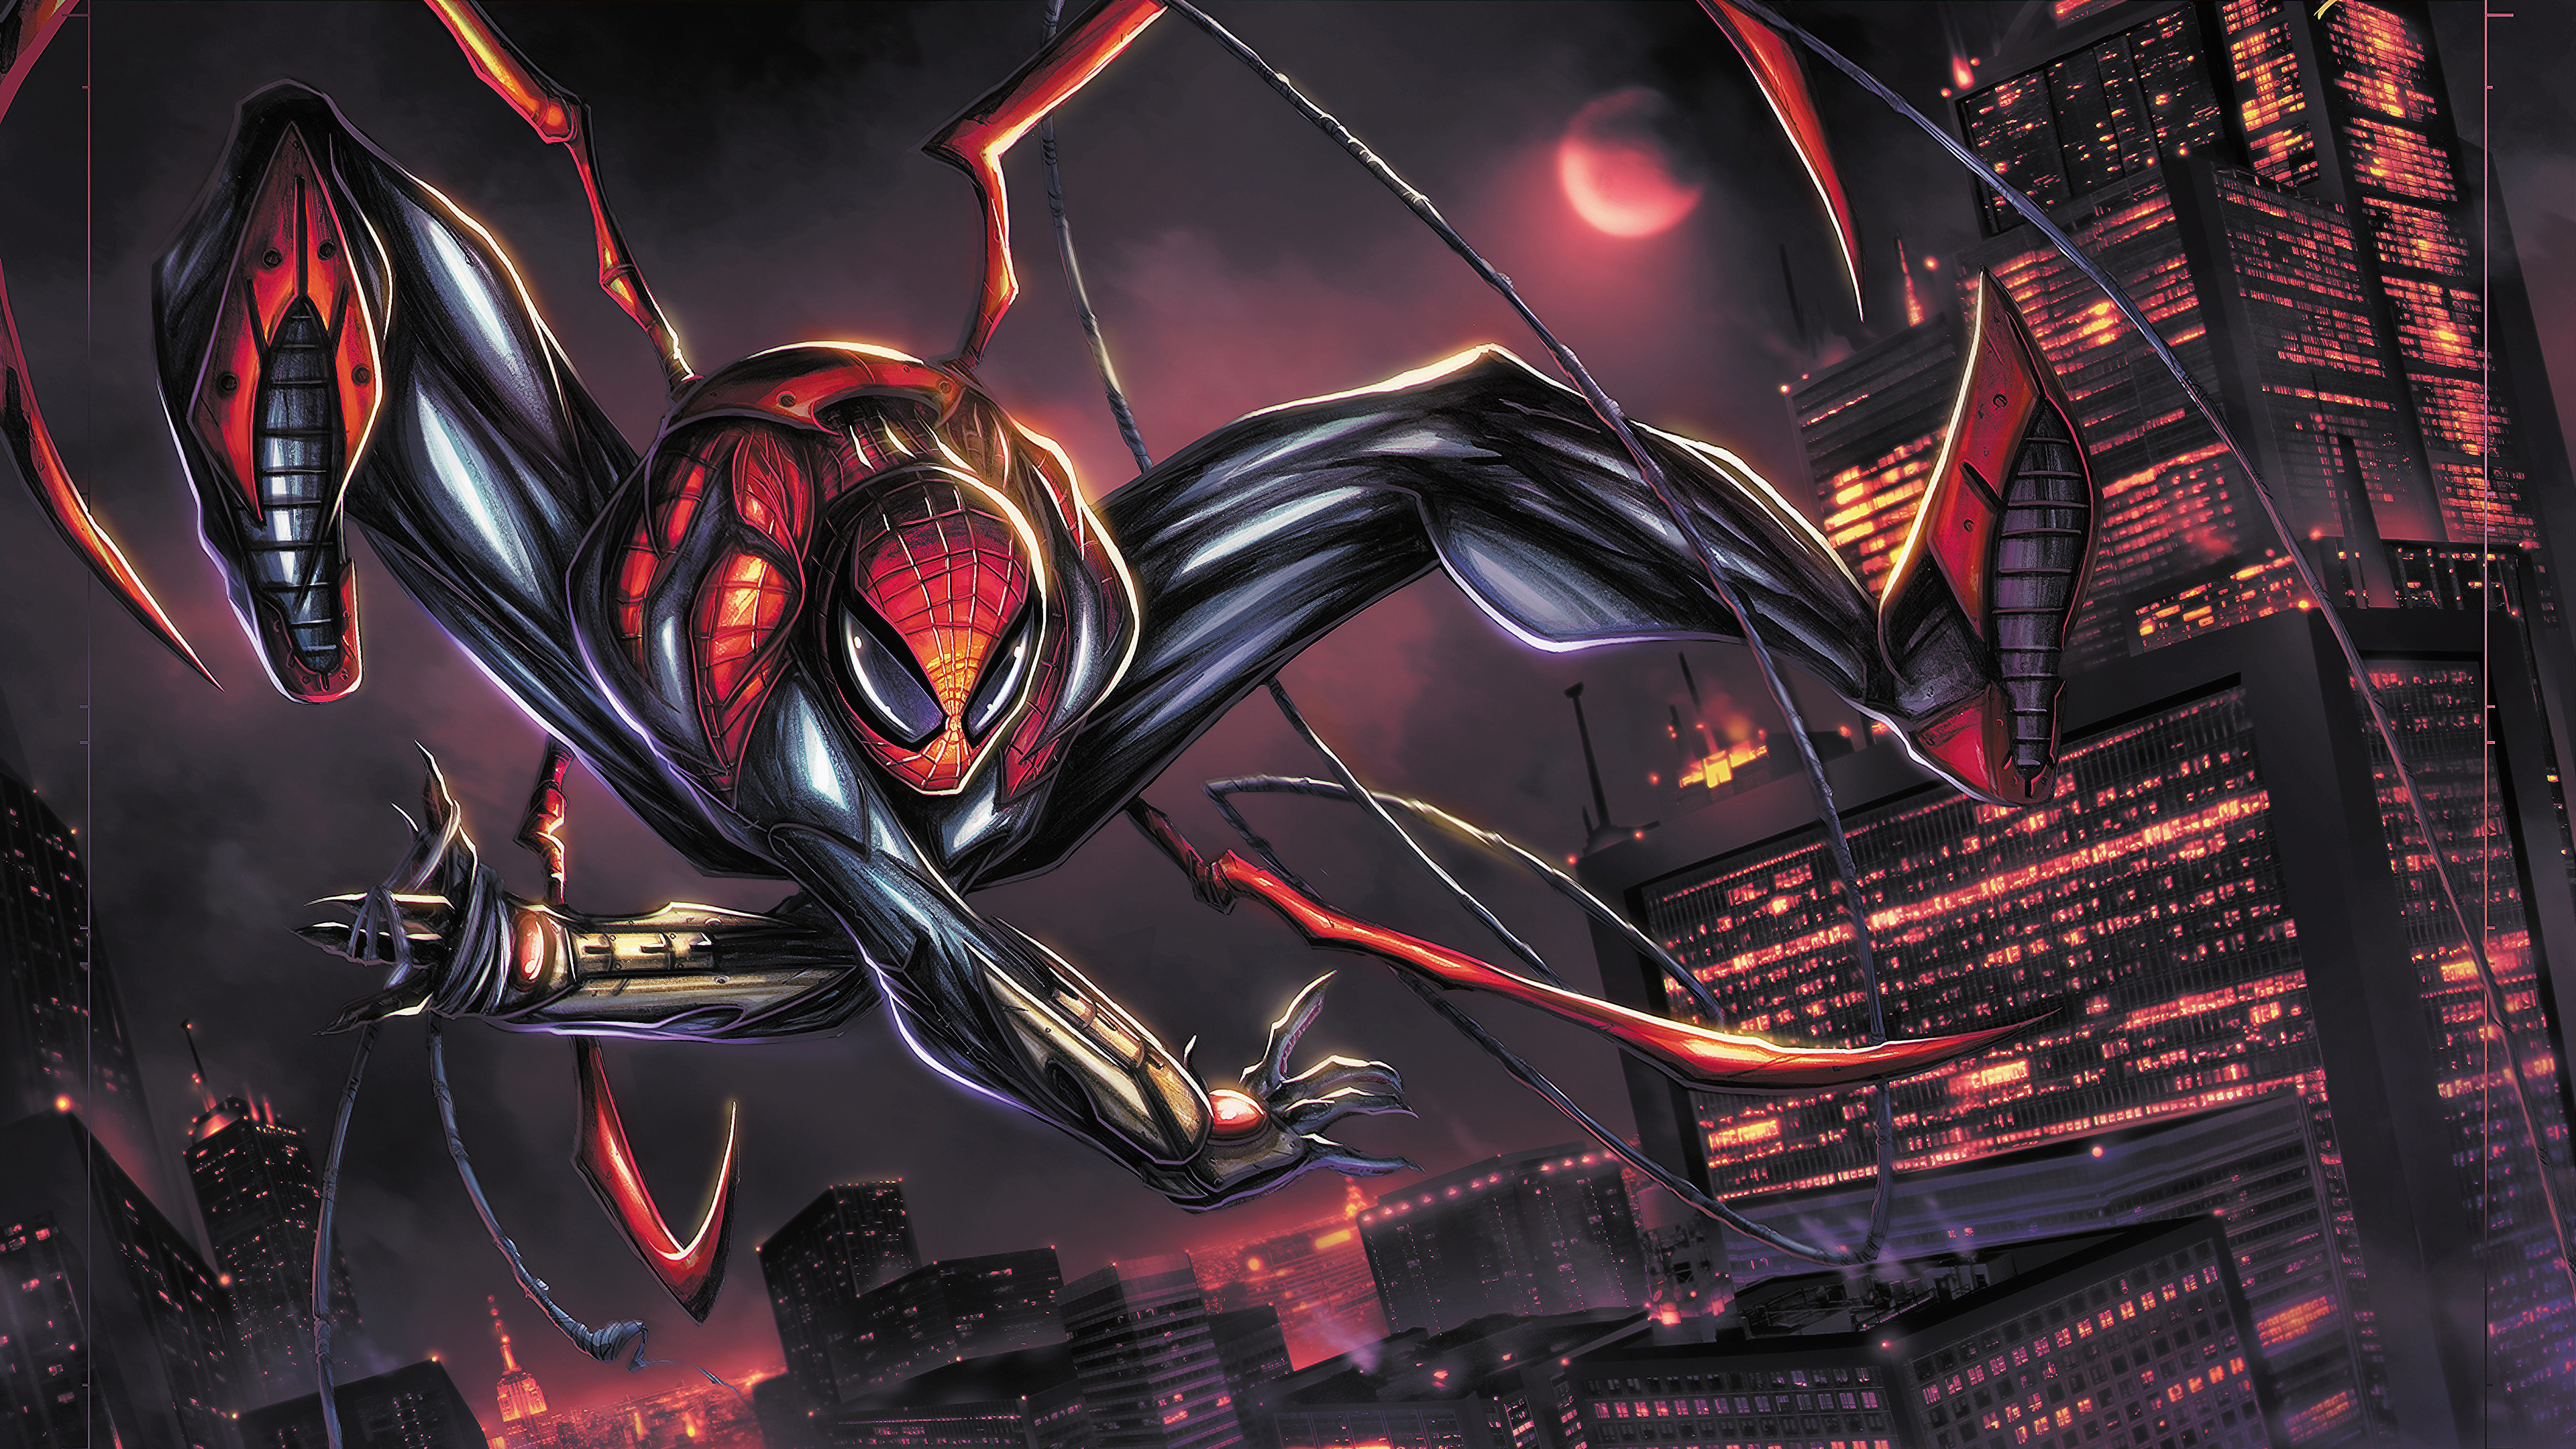 superior spidey 1560533729 - Superior Spidey - superheroes wallpapers, spiderman wallpapers, hd-wallpapers, digital art wallpapers, deviantart wallpapers, artwork wallpapers, artist wallpapers, 4k-wallpapers